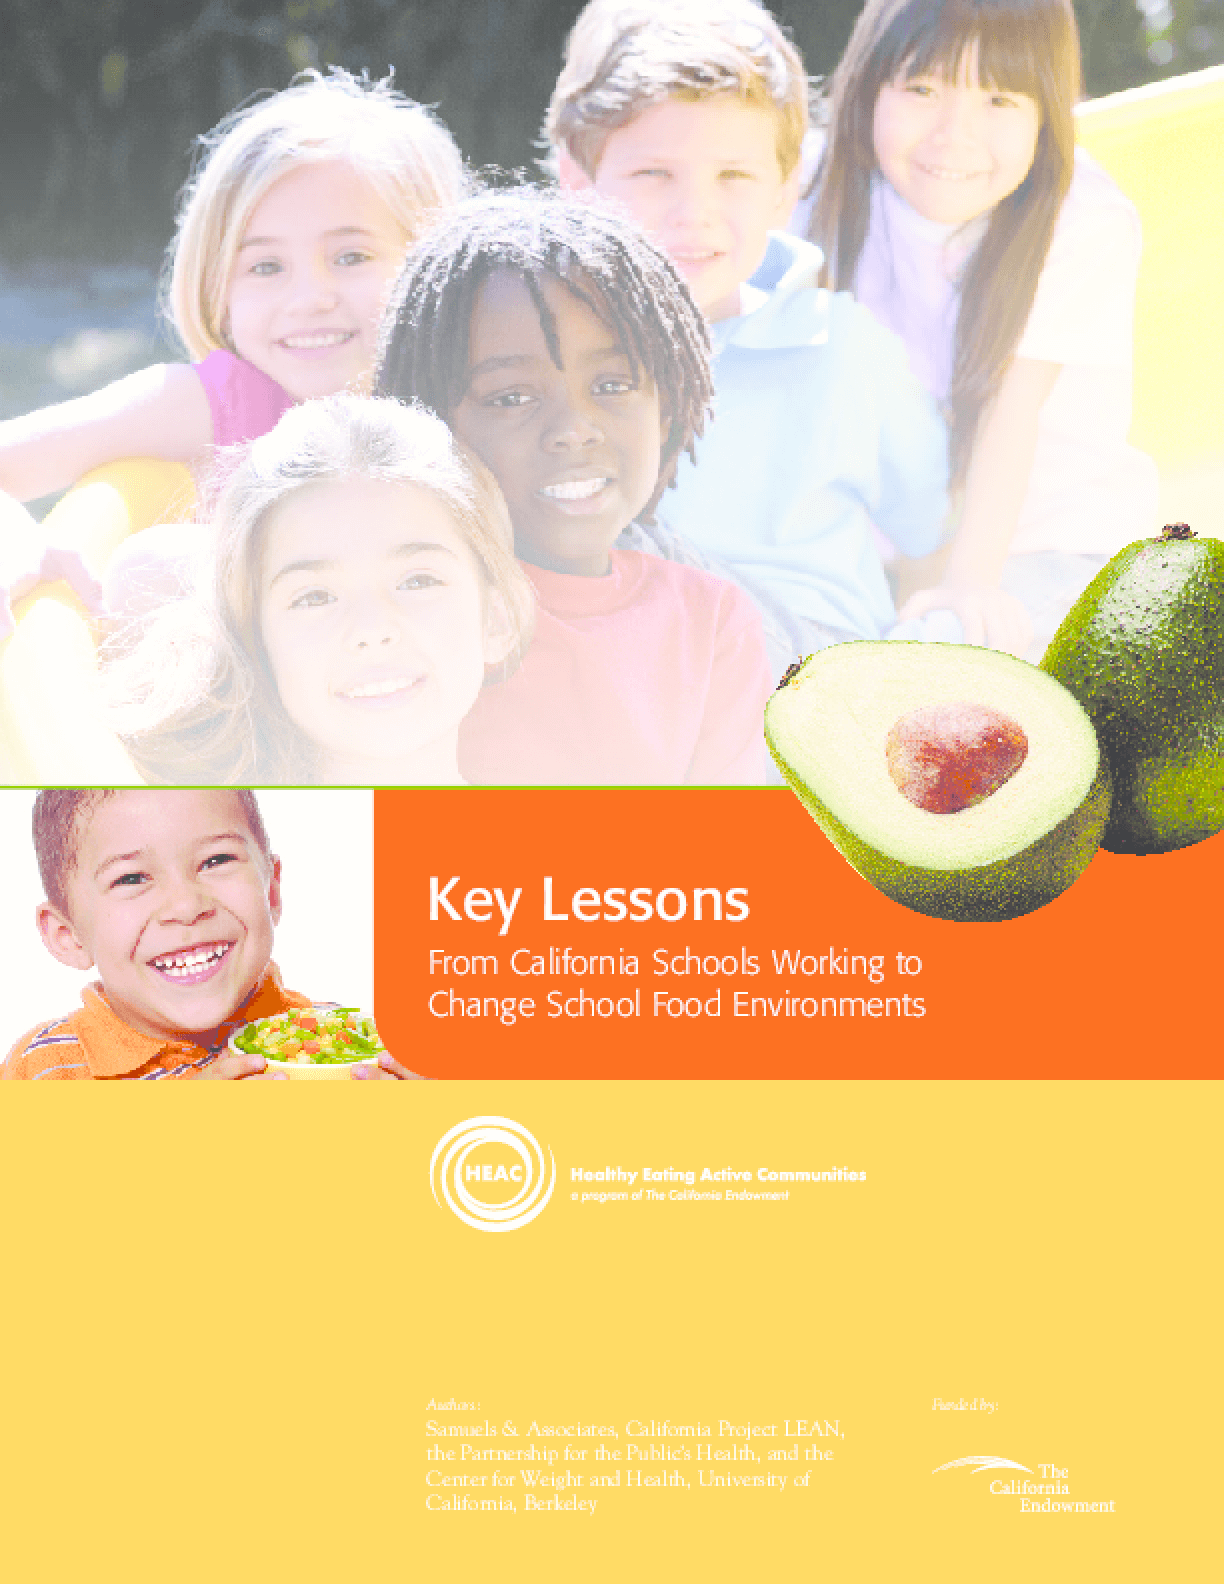 Key Lessons From California Schools Working to Change School Food Environments